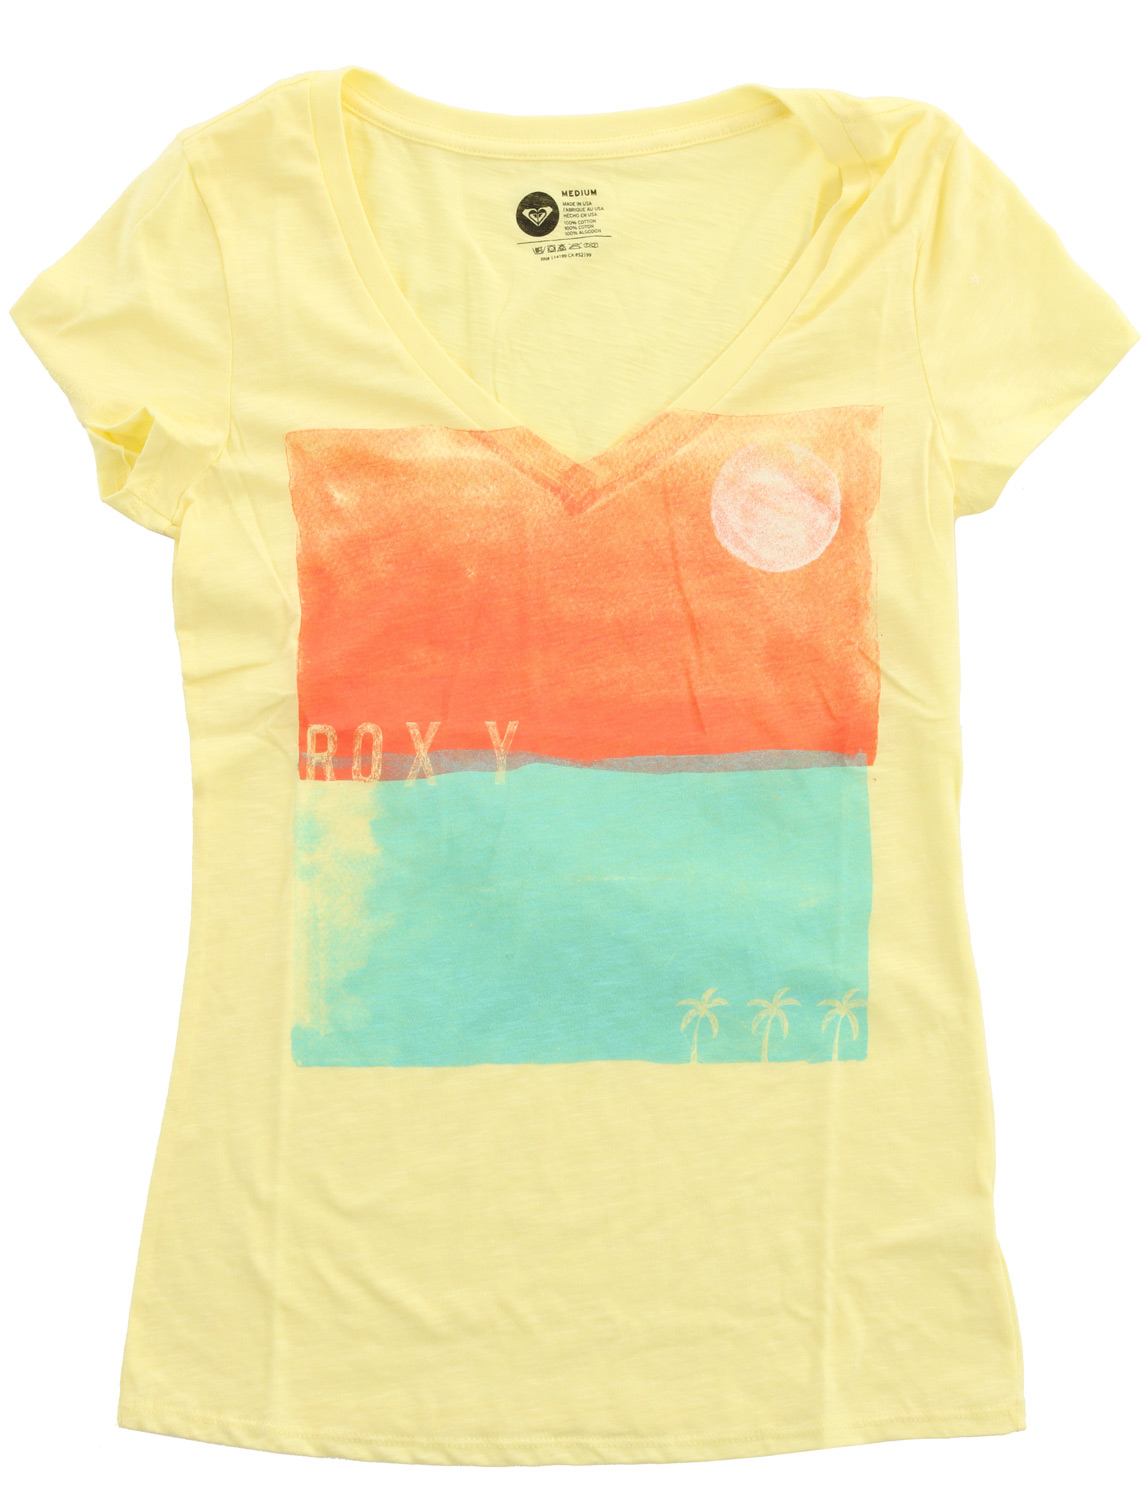 "Surf Key Features of the Roxy Palm Square T-Shirt: 100% cotton slub jersey 40/1's garment dyed short sleeve vneck tee 26"" hps - $18.95"